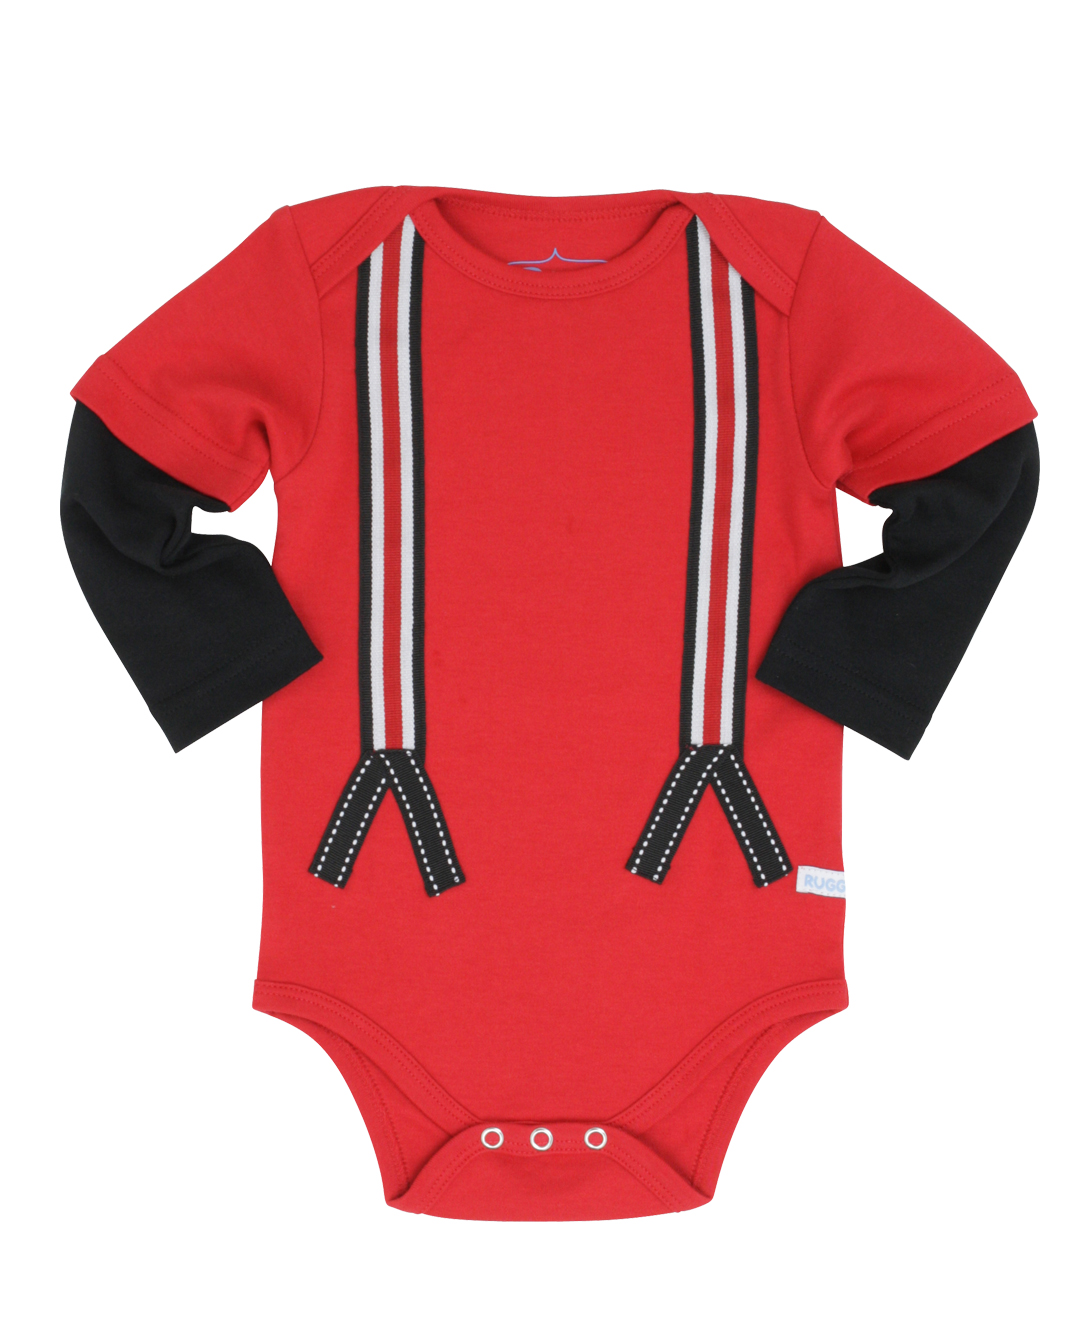 Valentine's outfit for baby boy